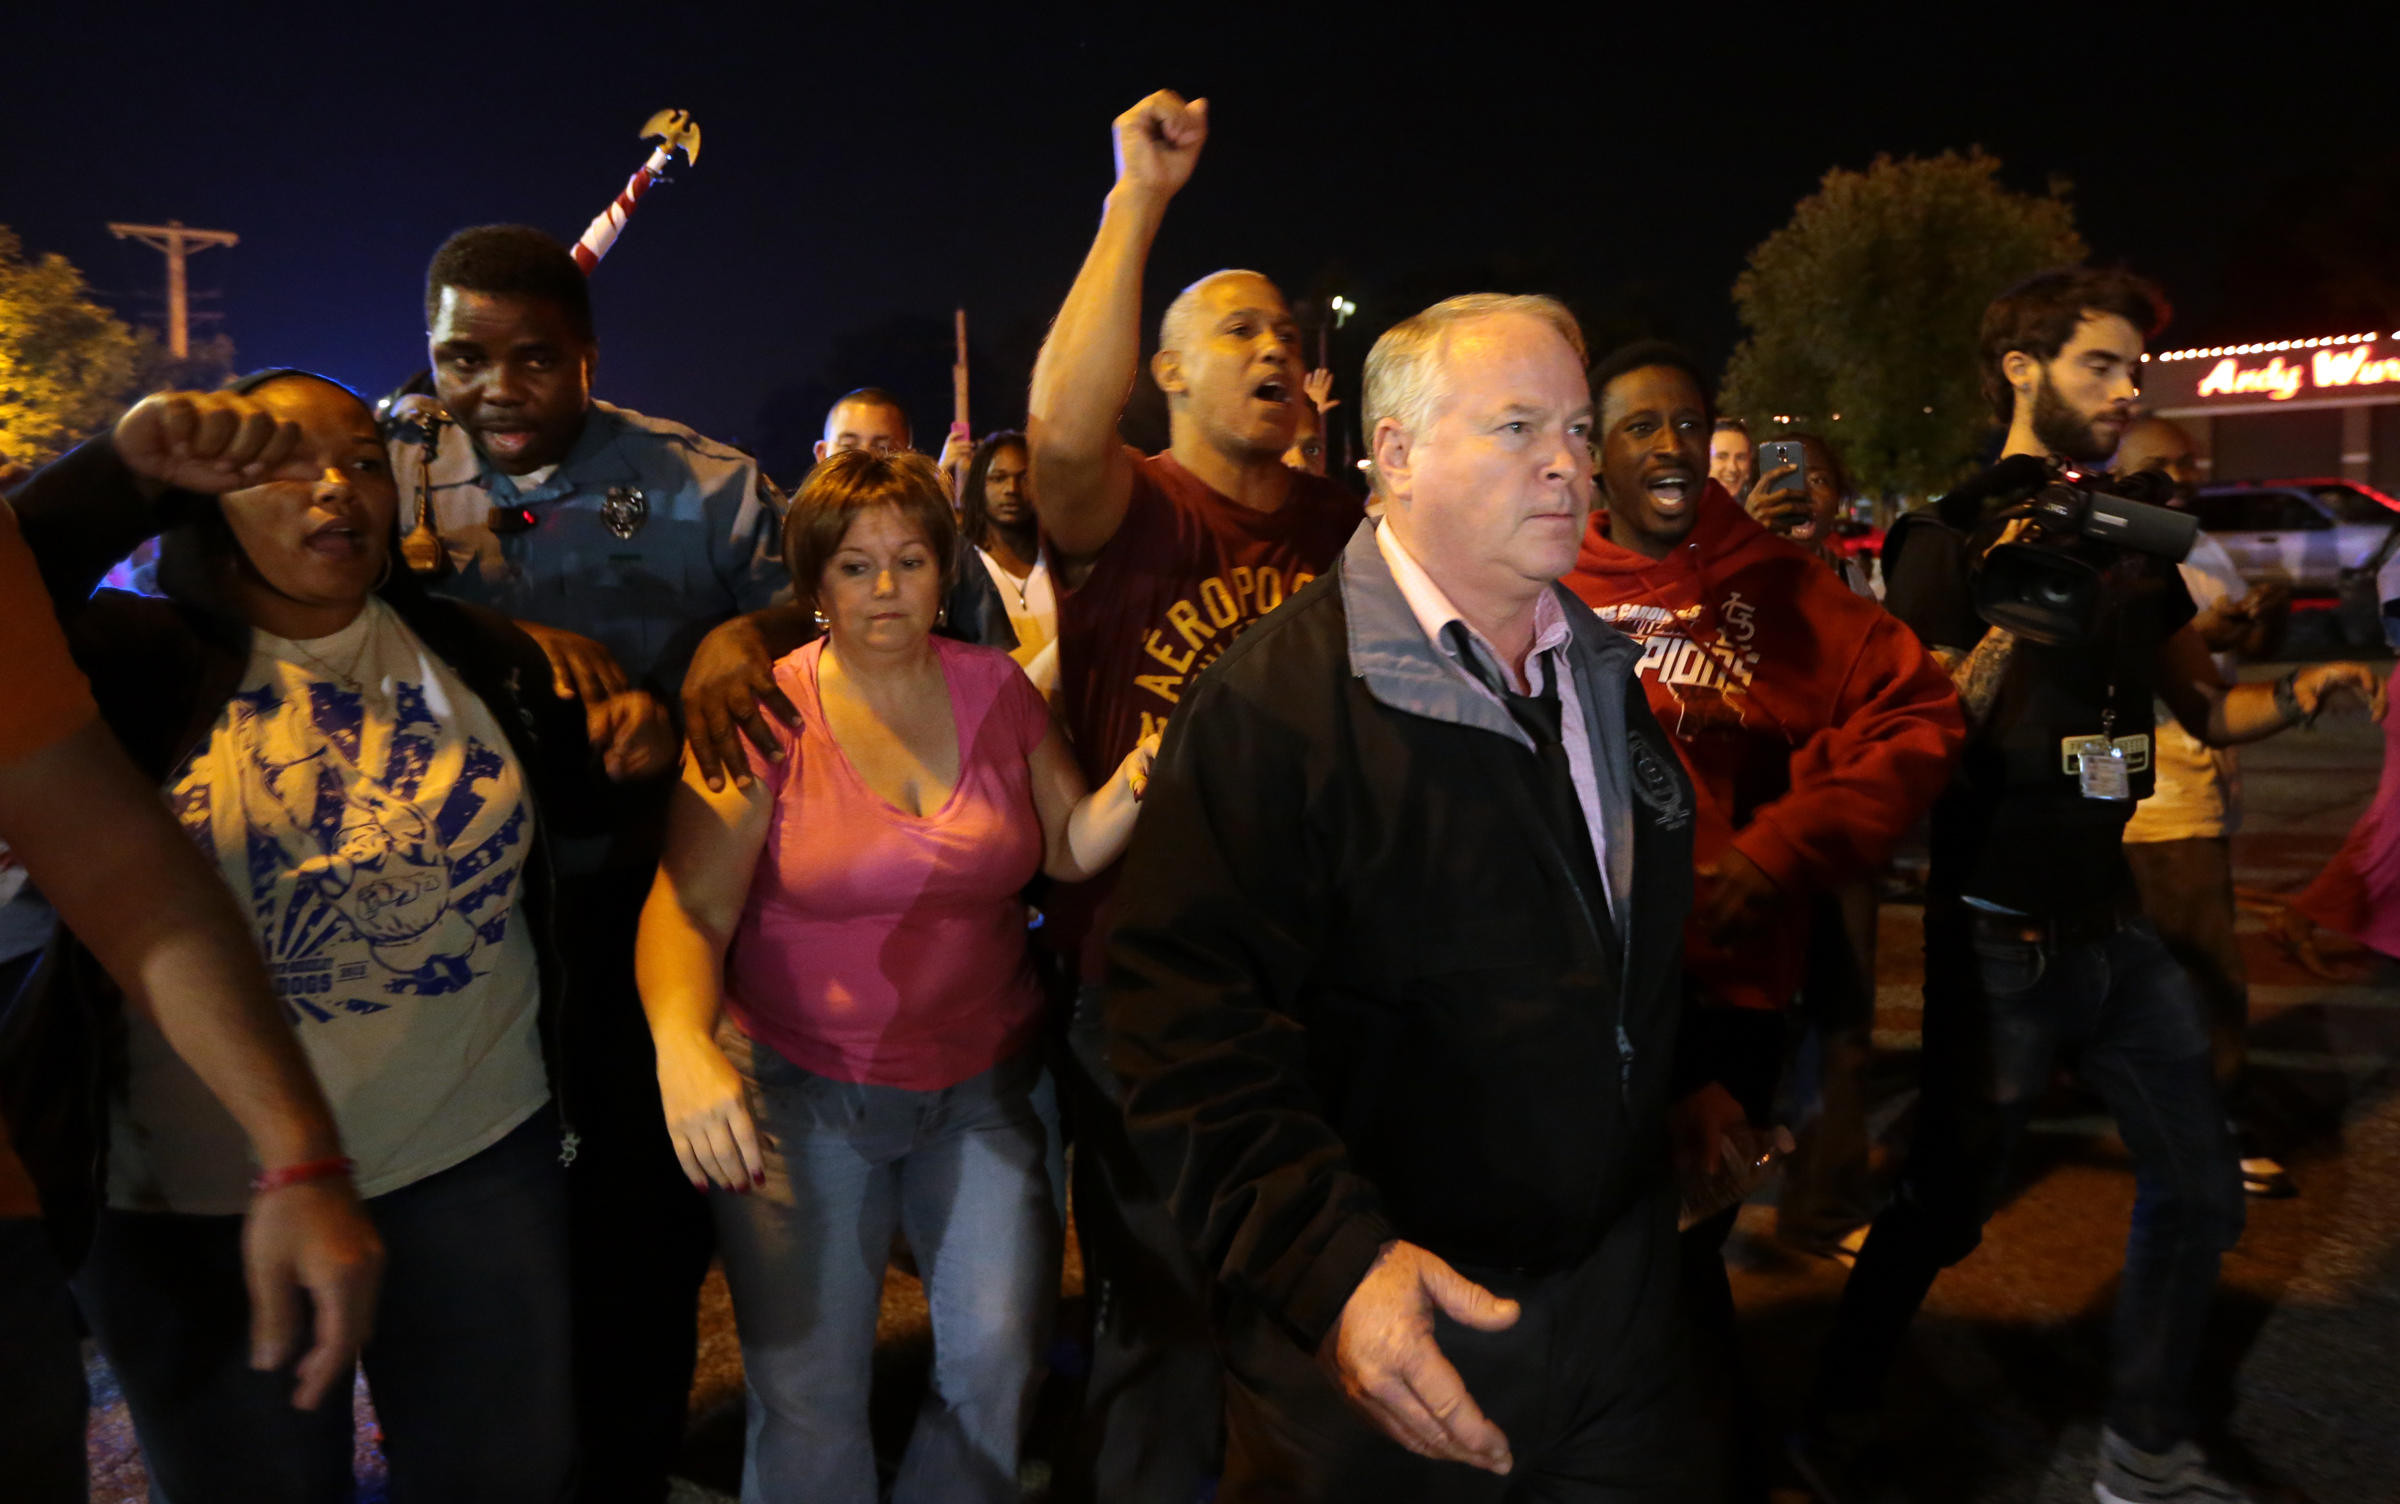 Ferguson Police Chief Tom Jackson begins to march with protesters before clashes led to arrests in front of the Ferguson Police Department, on Thursday, Sept. 25, 2014.